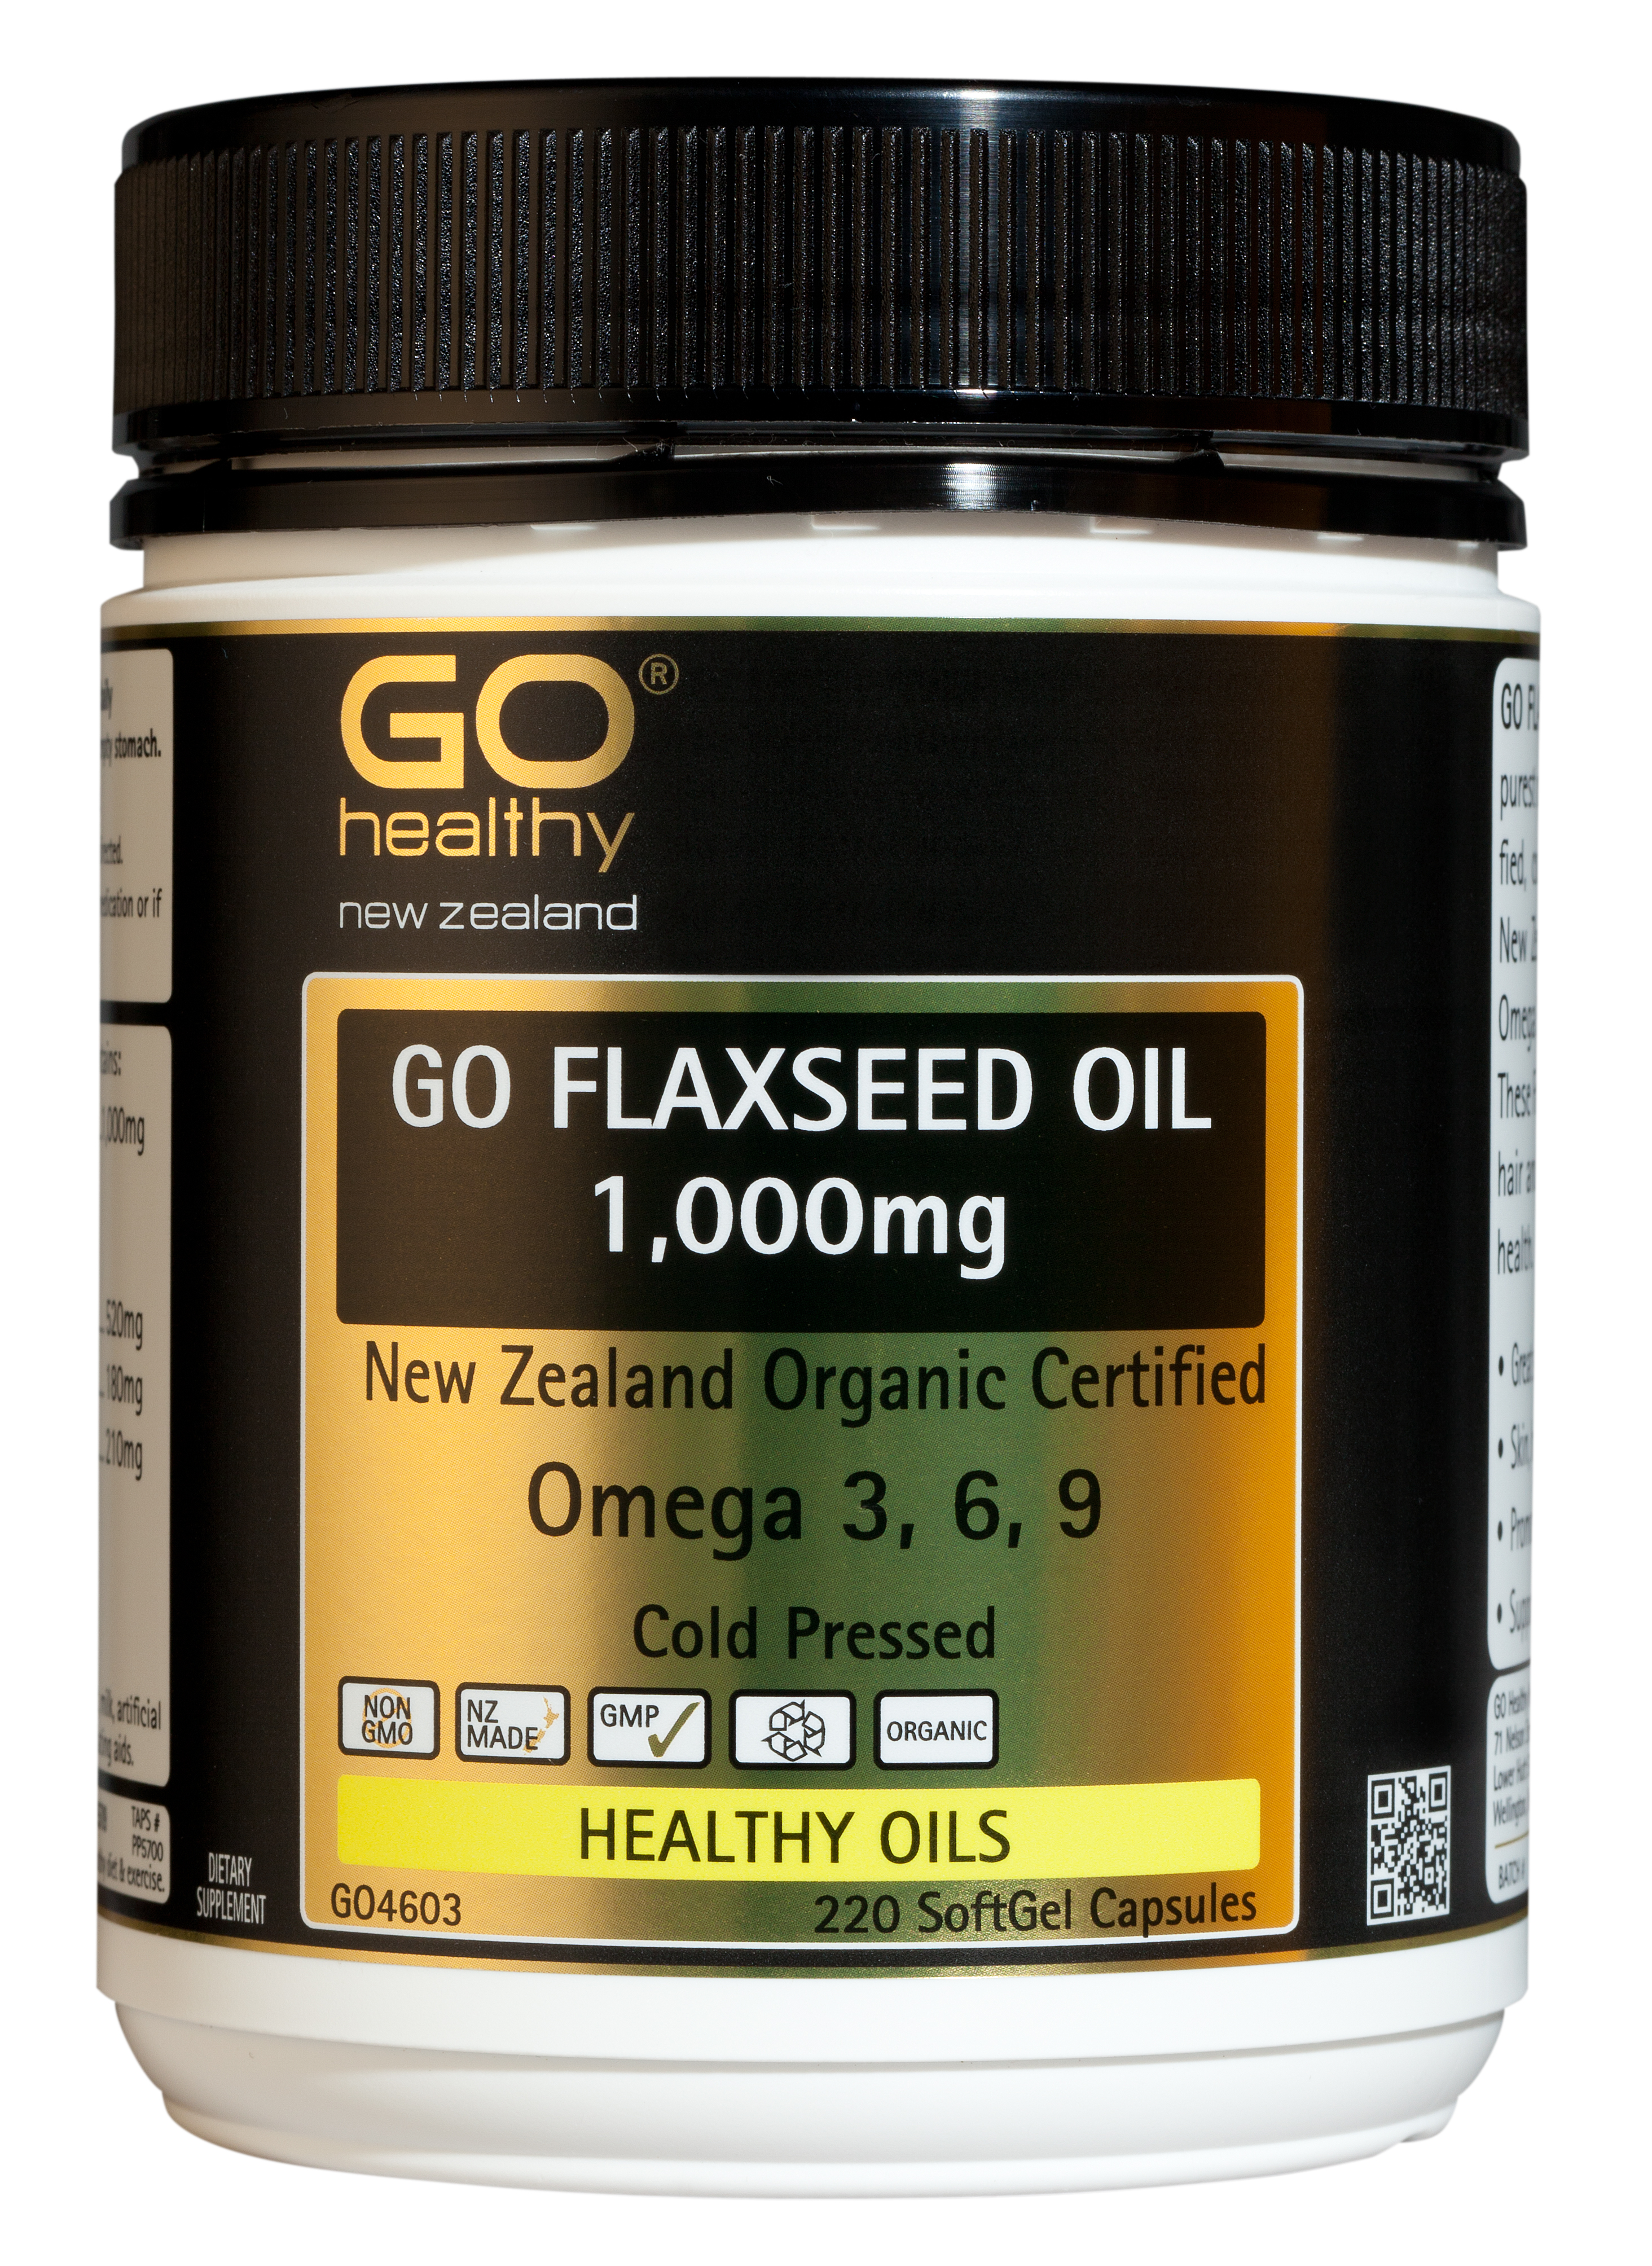 GO Healthy Flaxseed Oil 1,000mg 220 Capsules